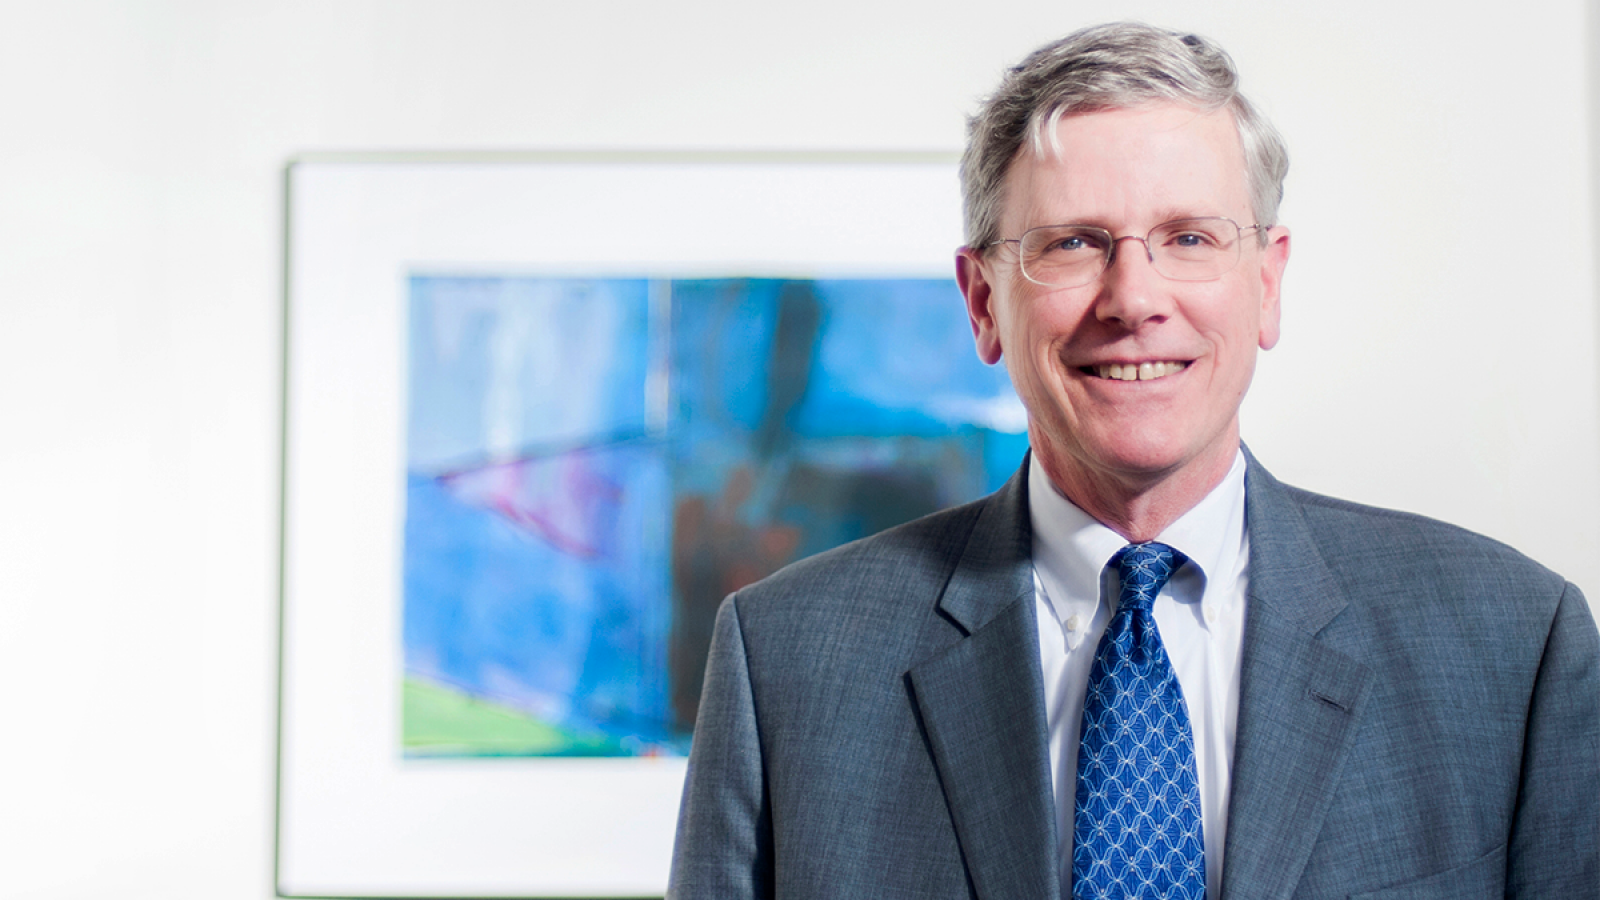 John Monahan wears a suit in front of a blue picture on white wall